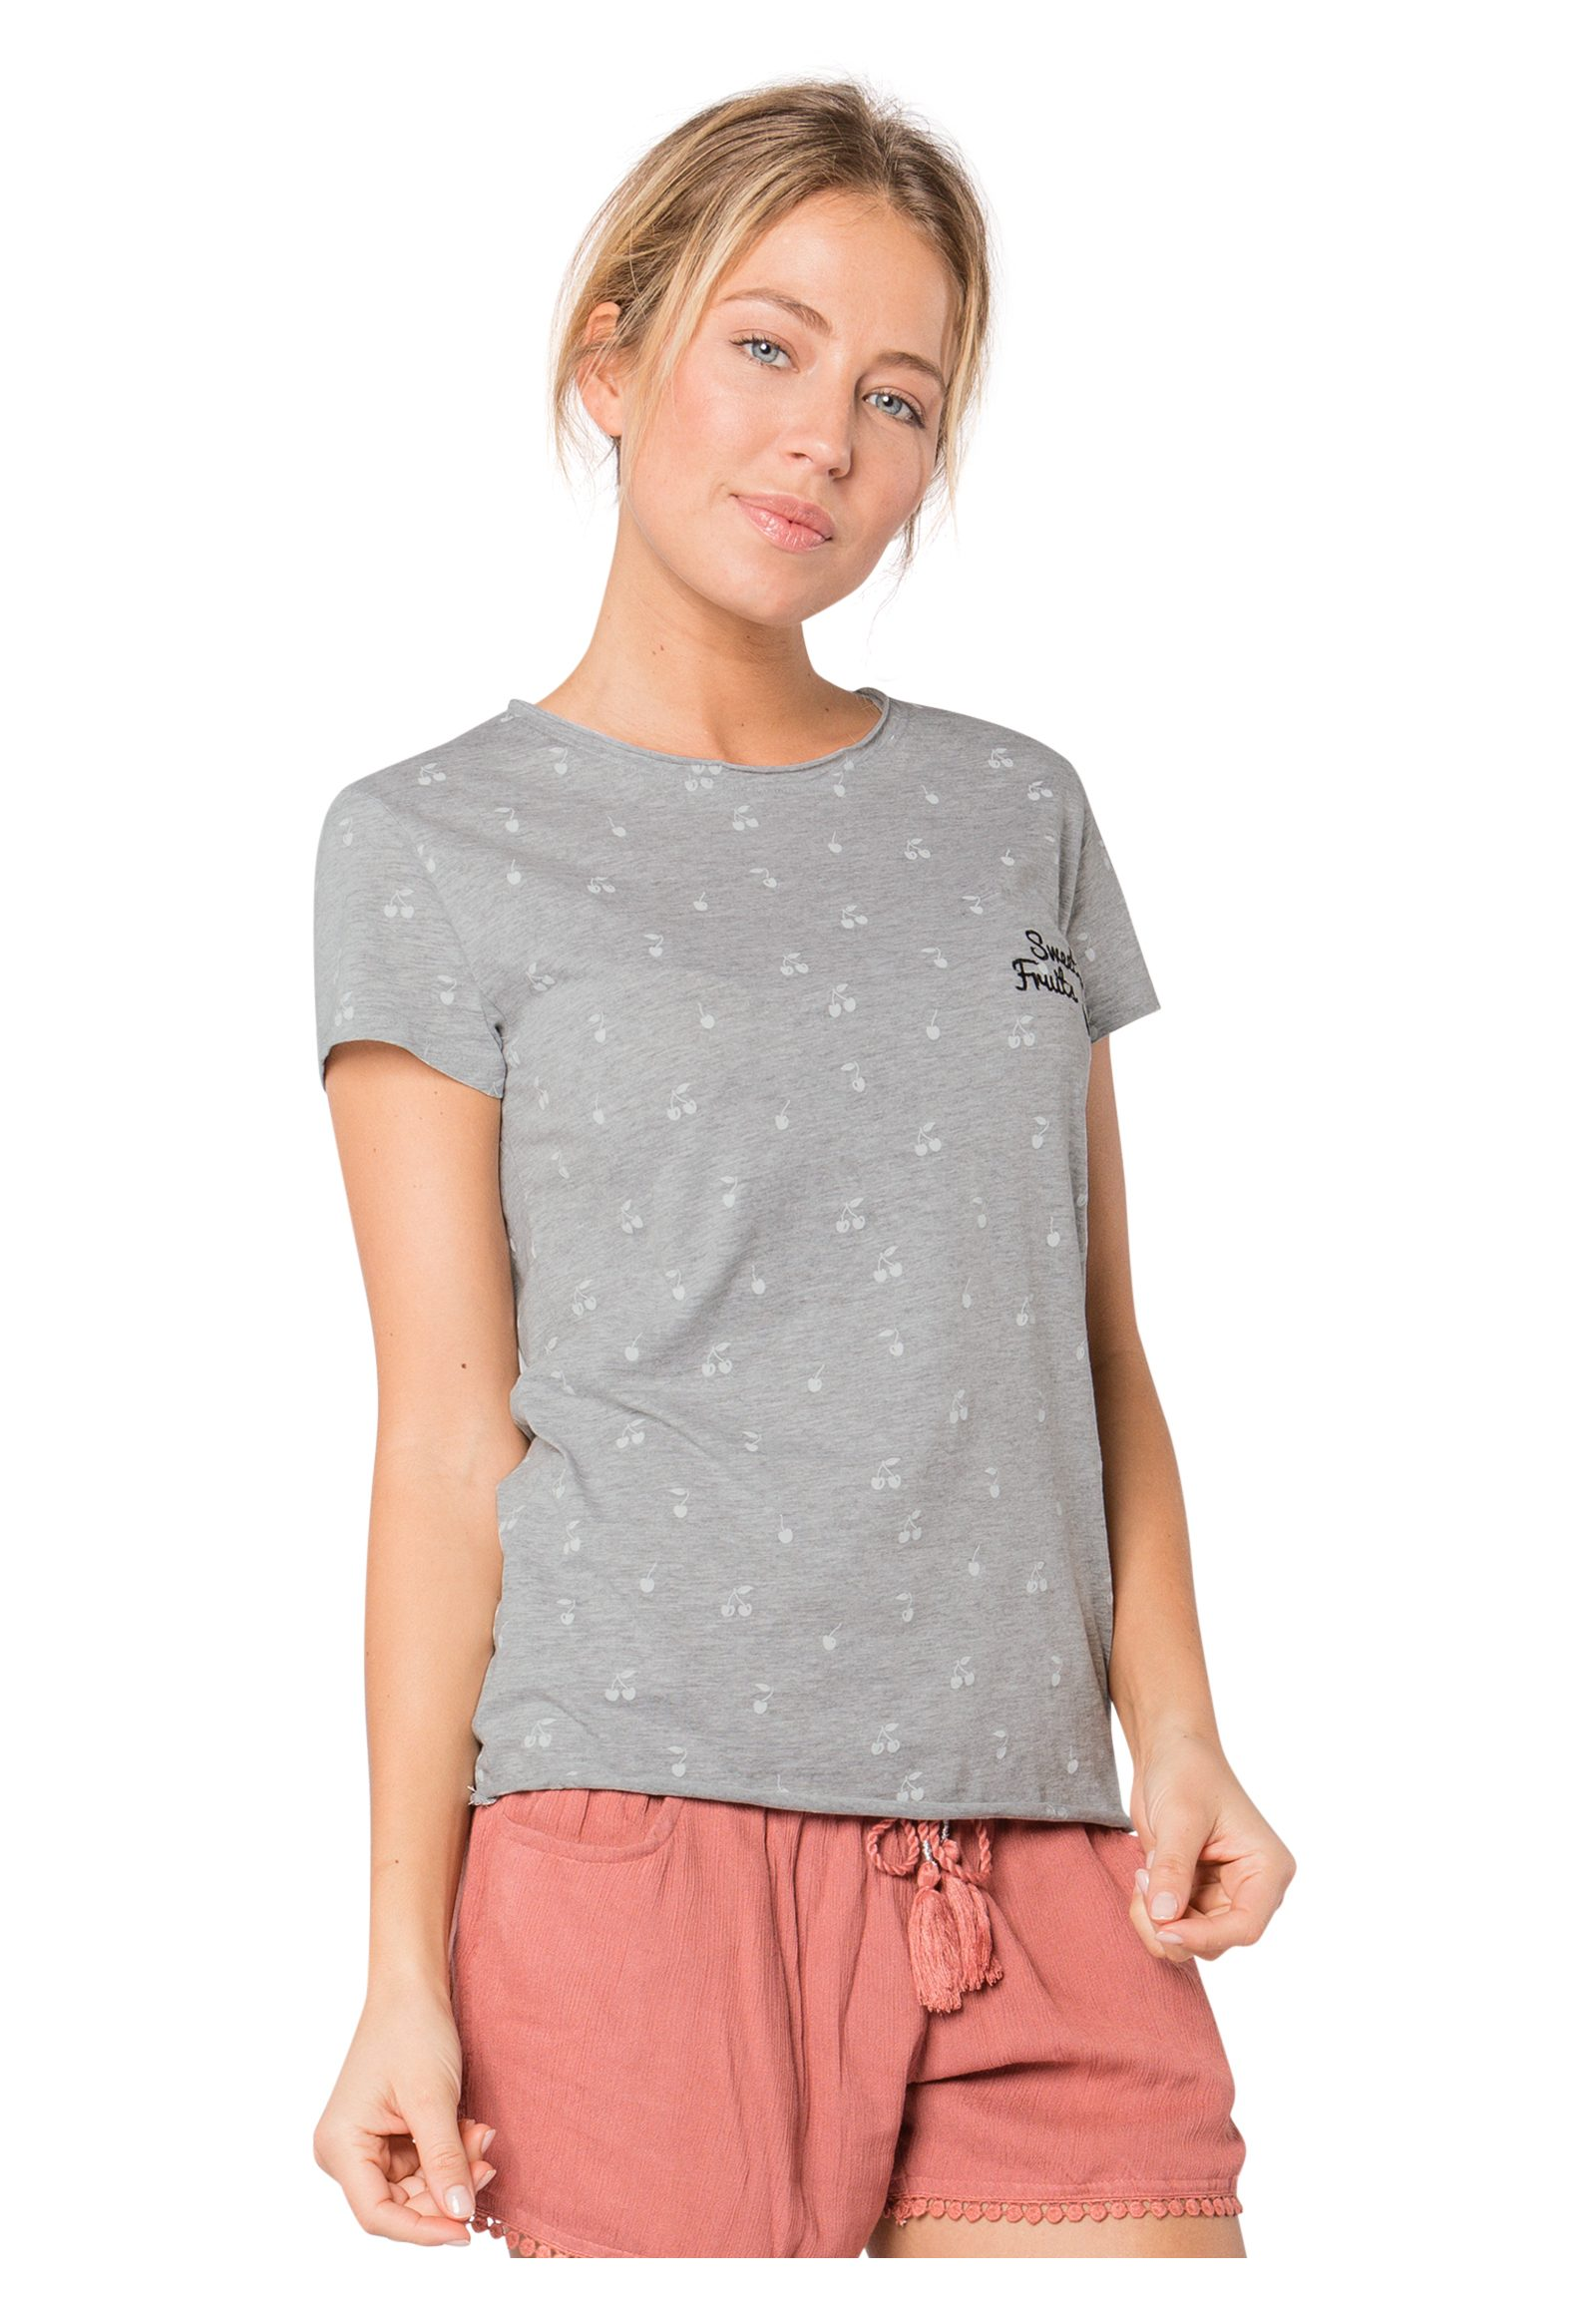 SUBLEVEL Damen T-Shirt Fruits Allover Print grau | 04058427497534